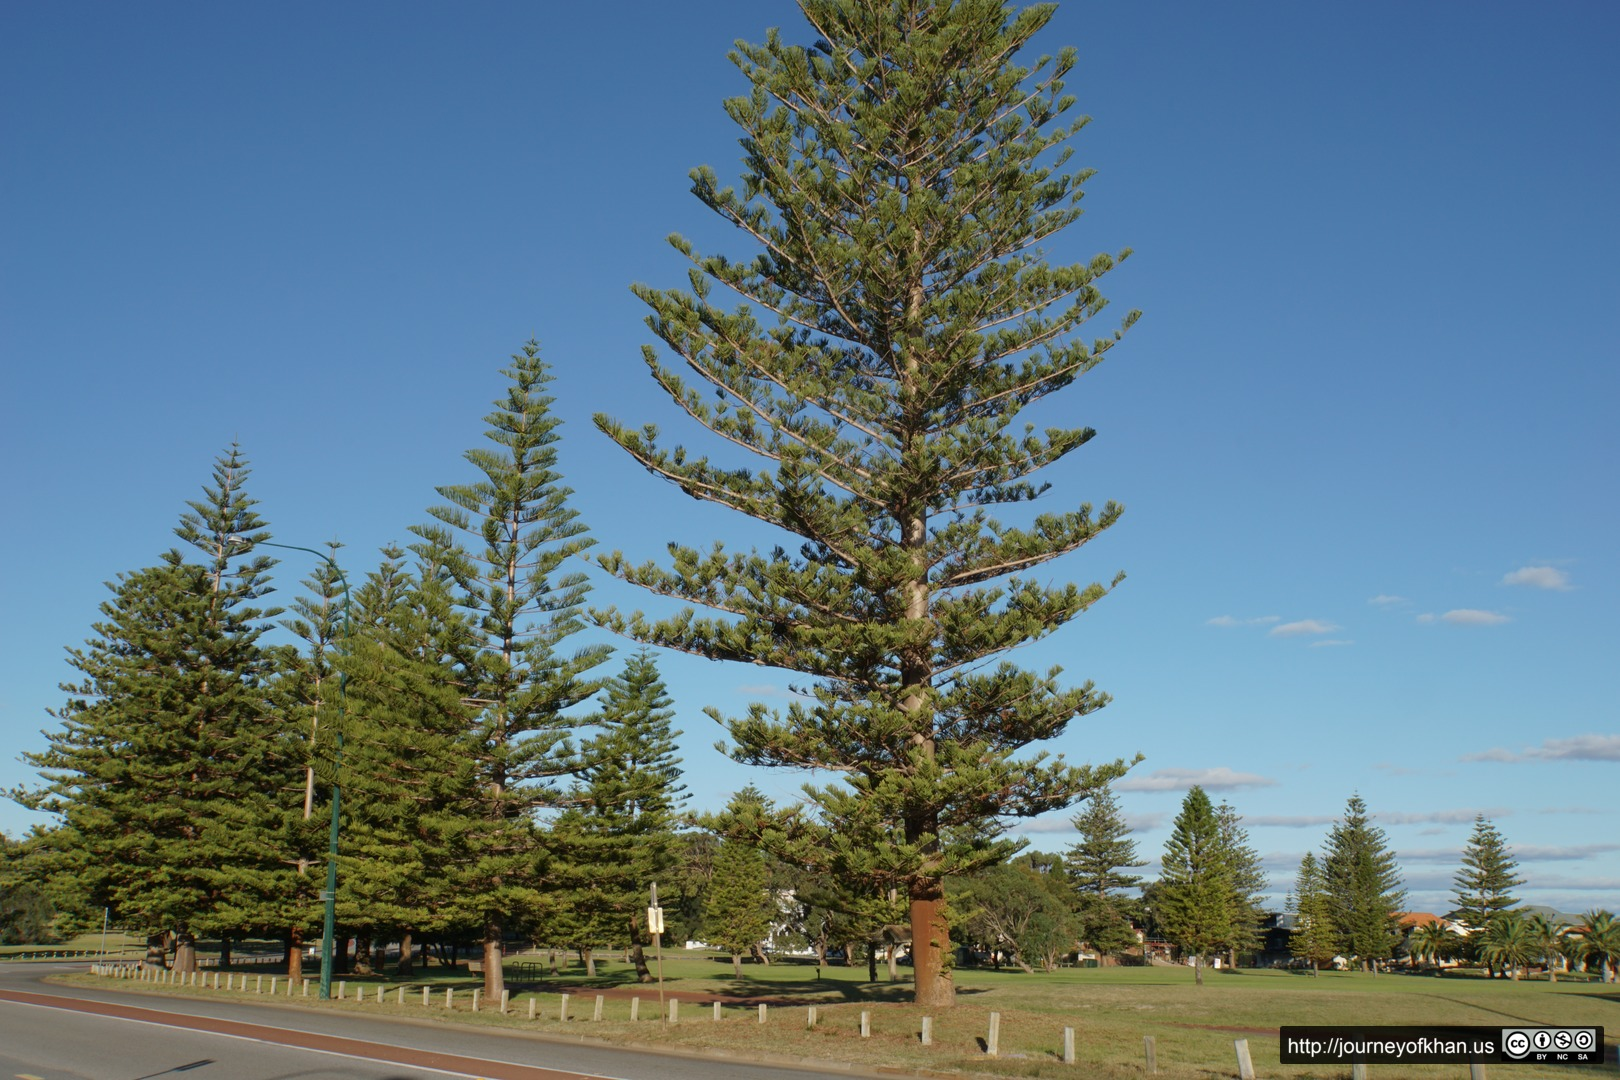 Tree next to a Road in Perth